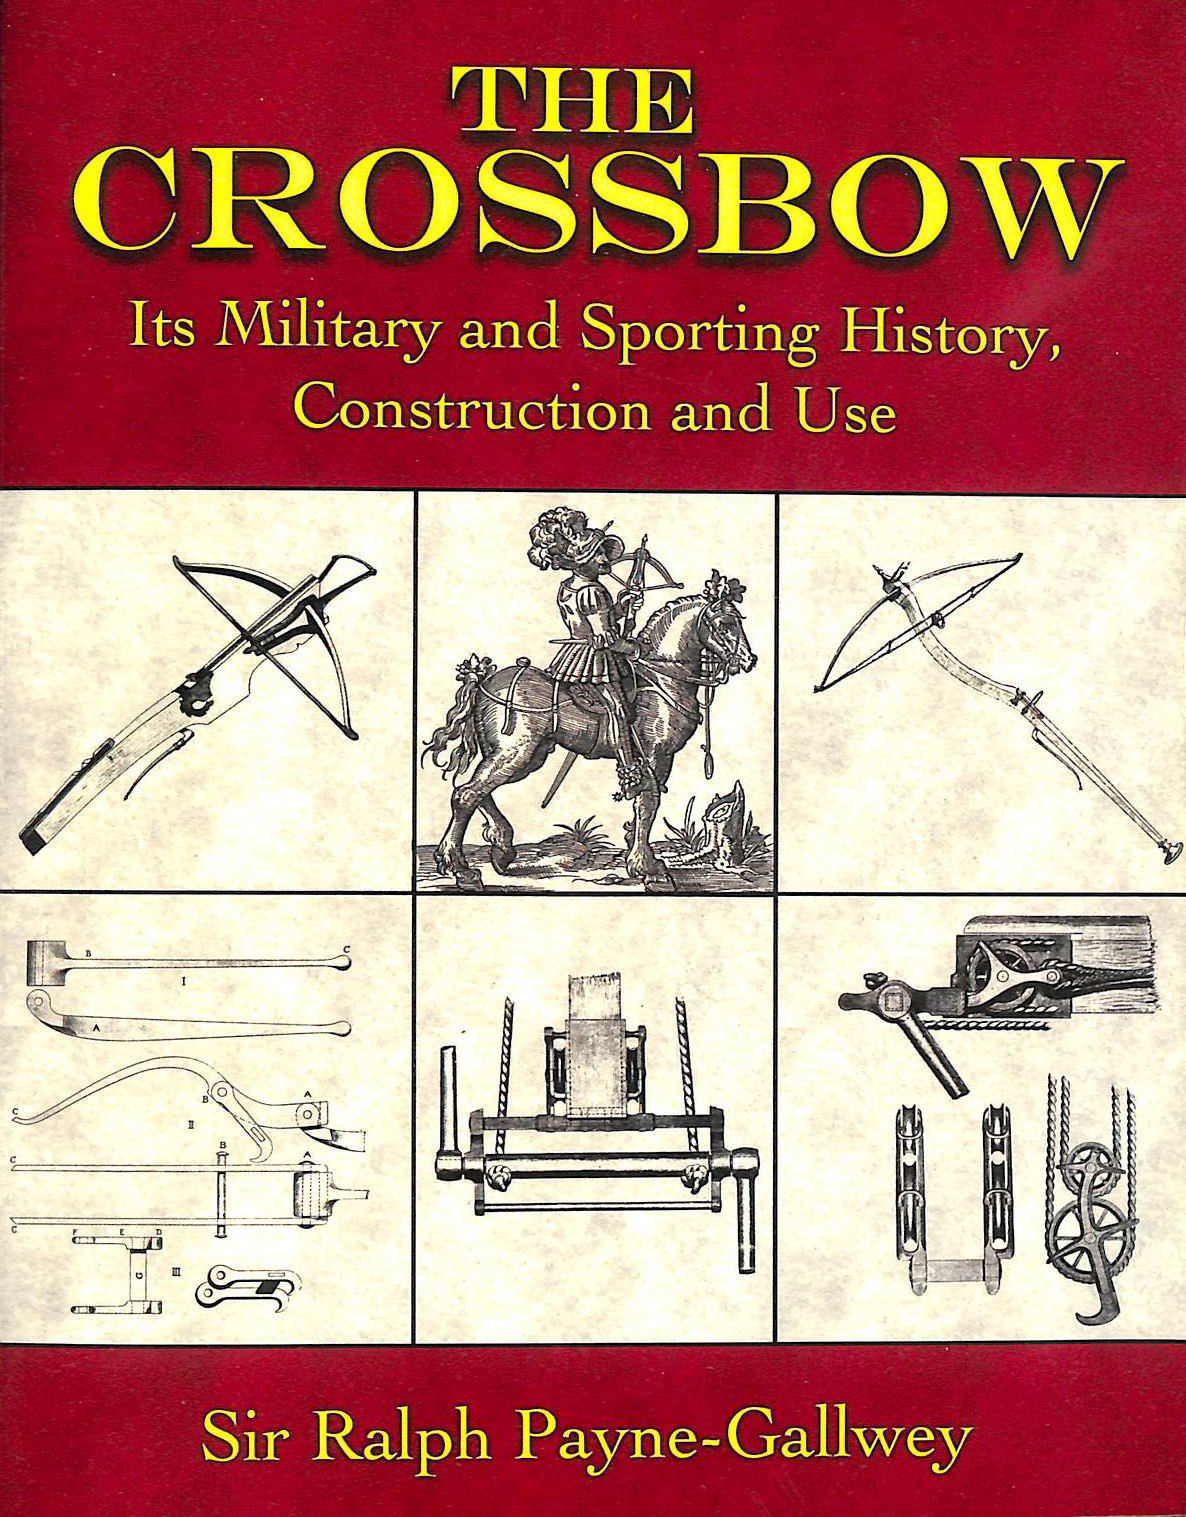 The Crossbow: Its Military and Sporting History, Construction and Use, Ralph Payne-Gallwey